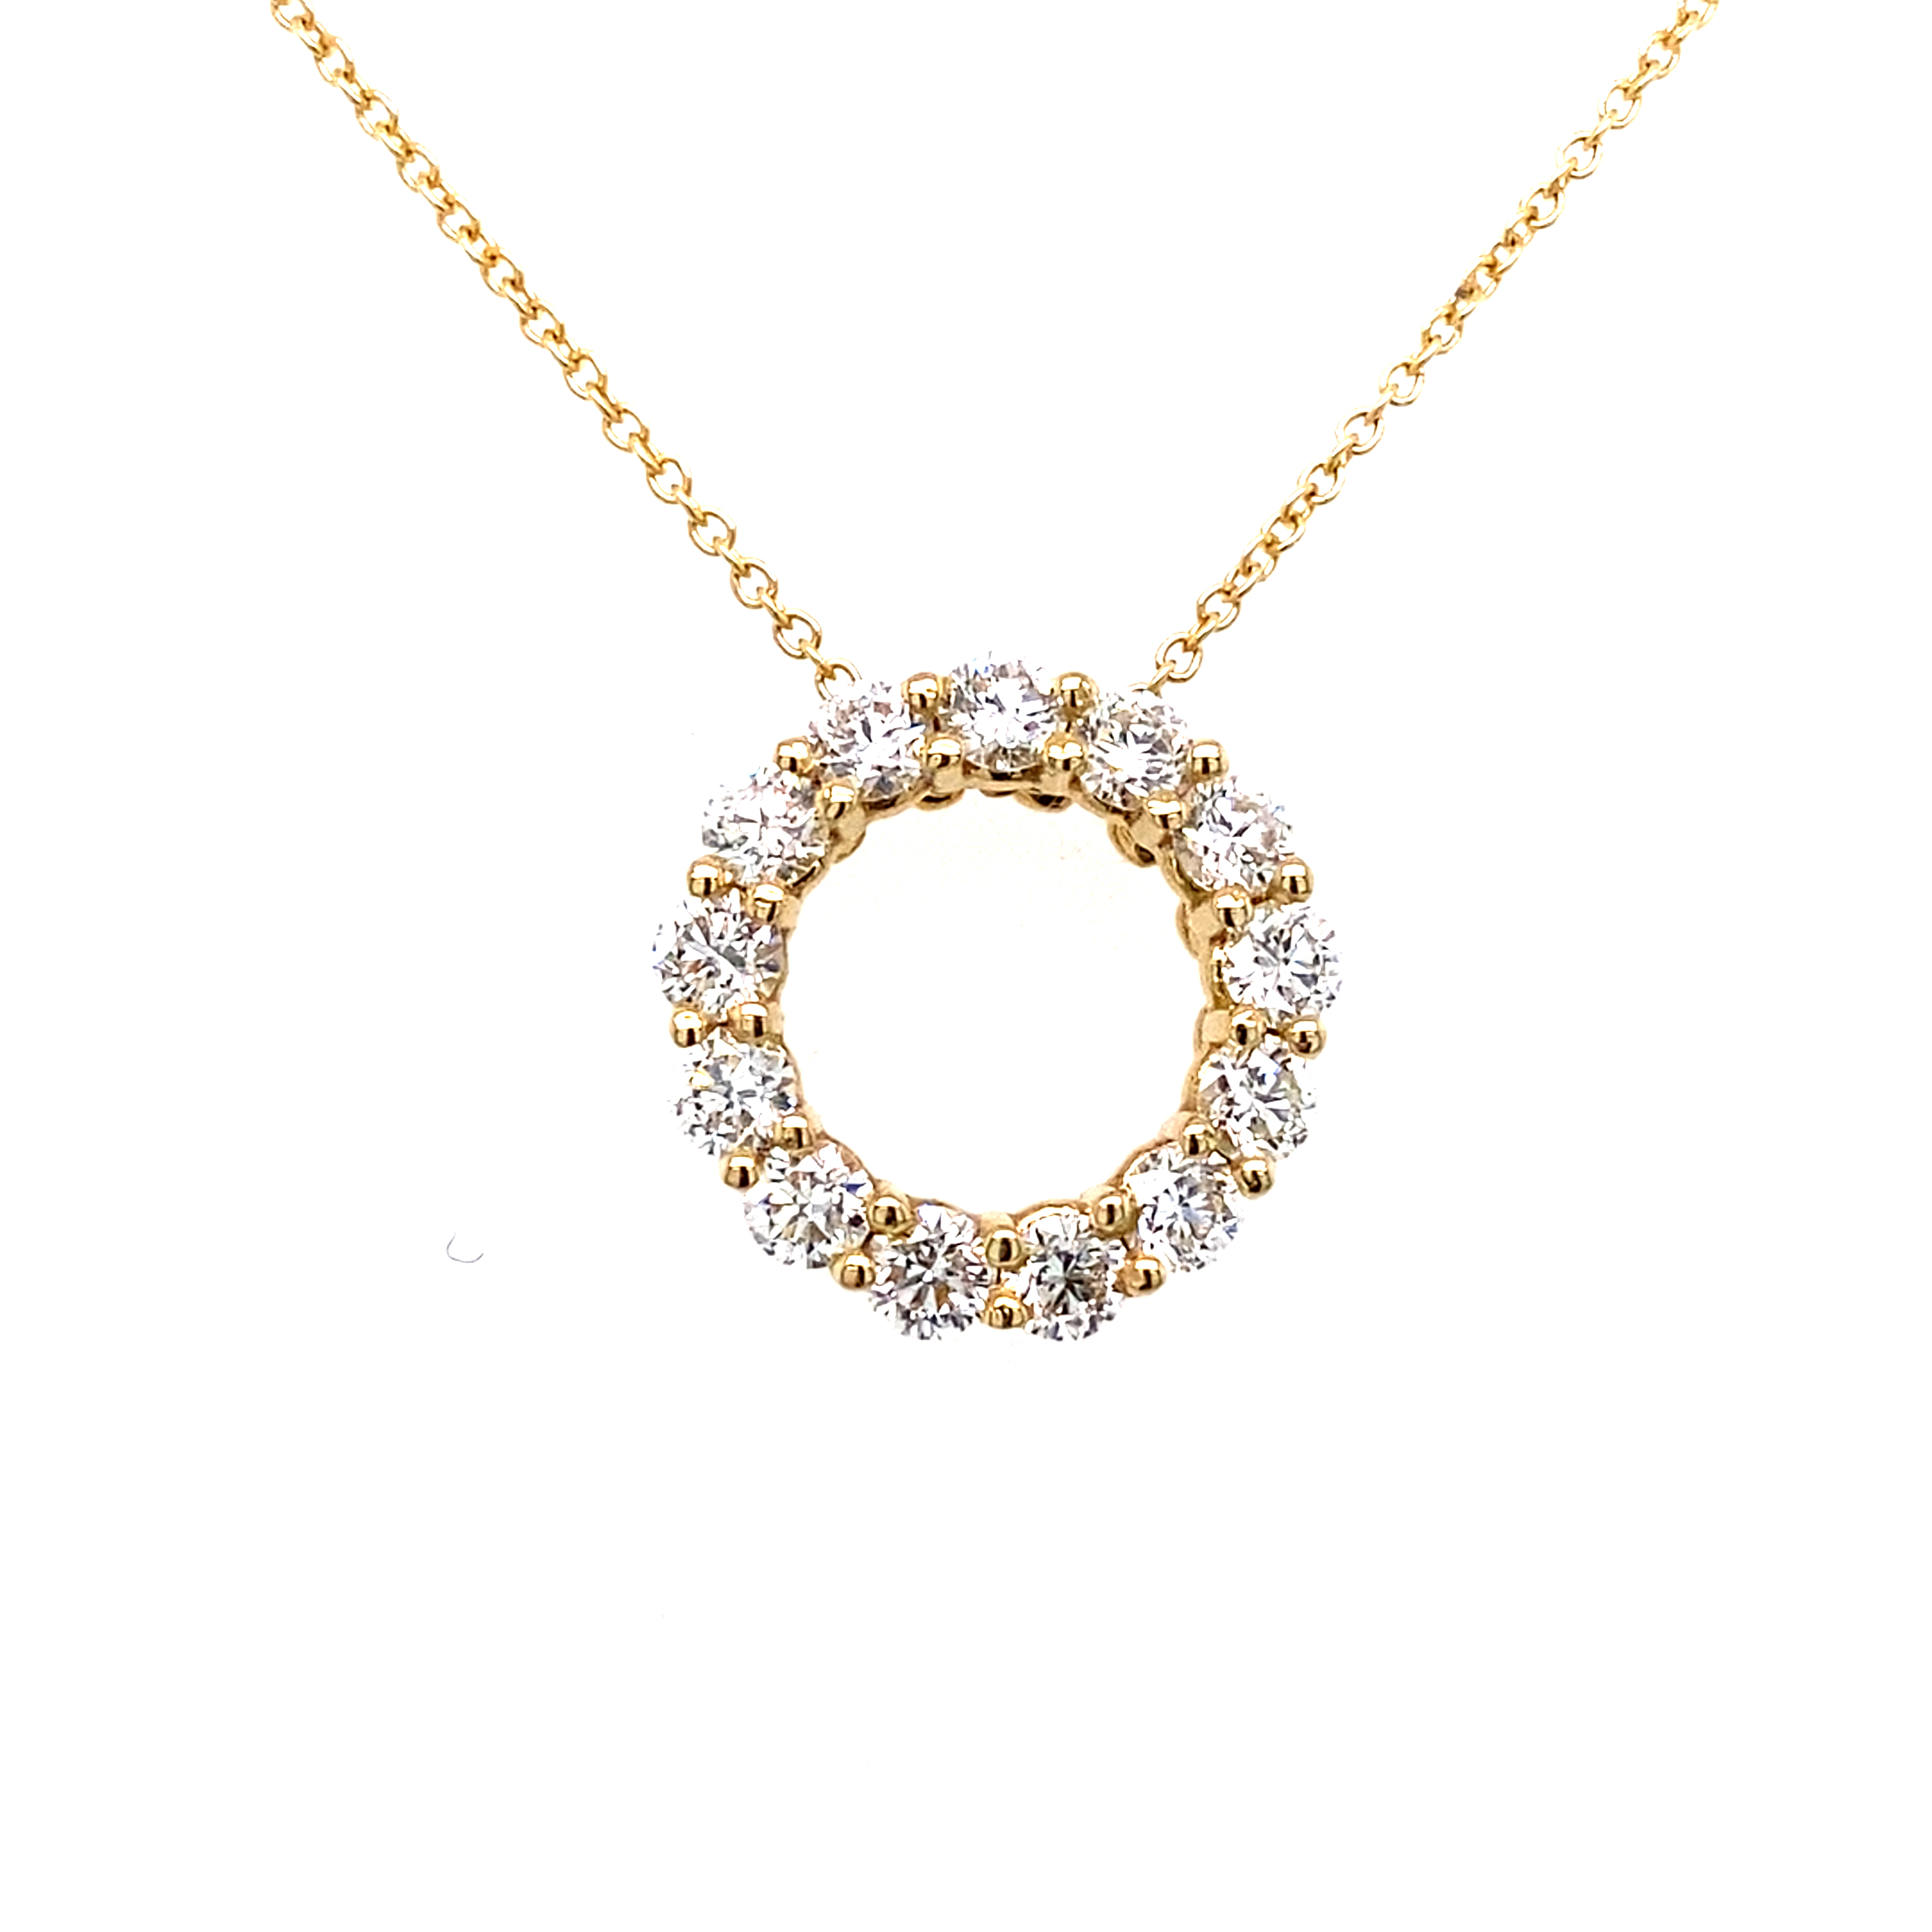 18 Carat Yellow Gold and Diamond Pendant 1.00 carats